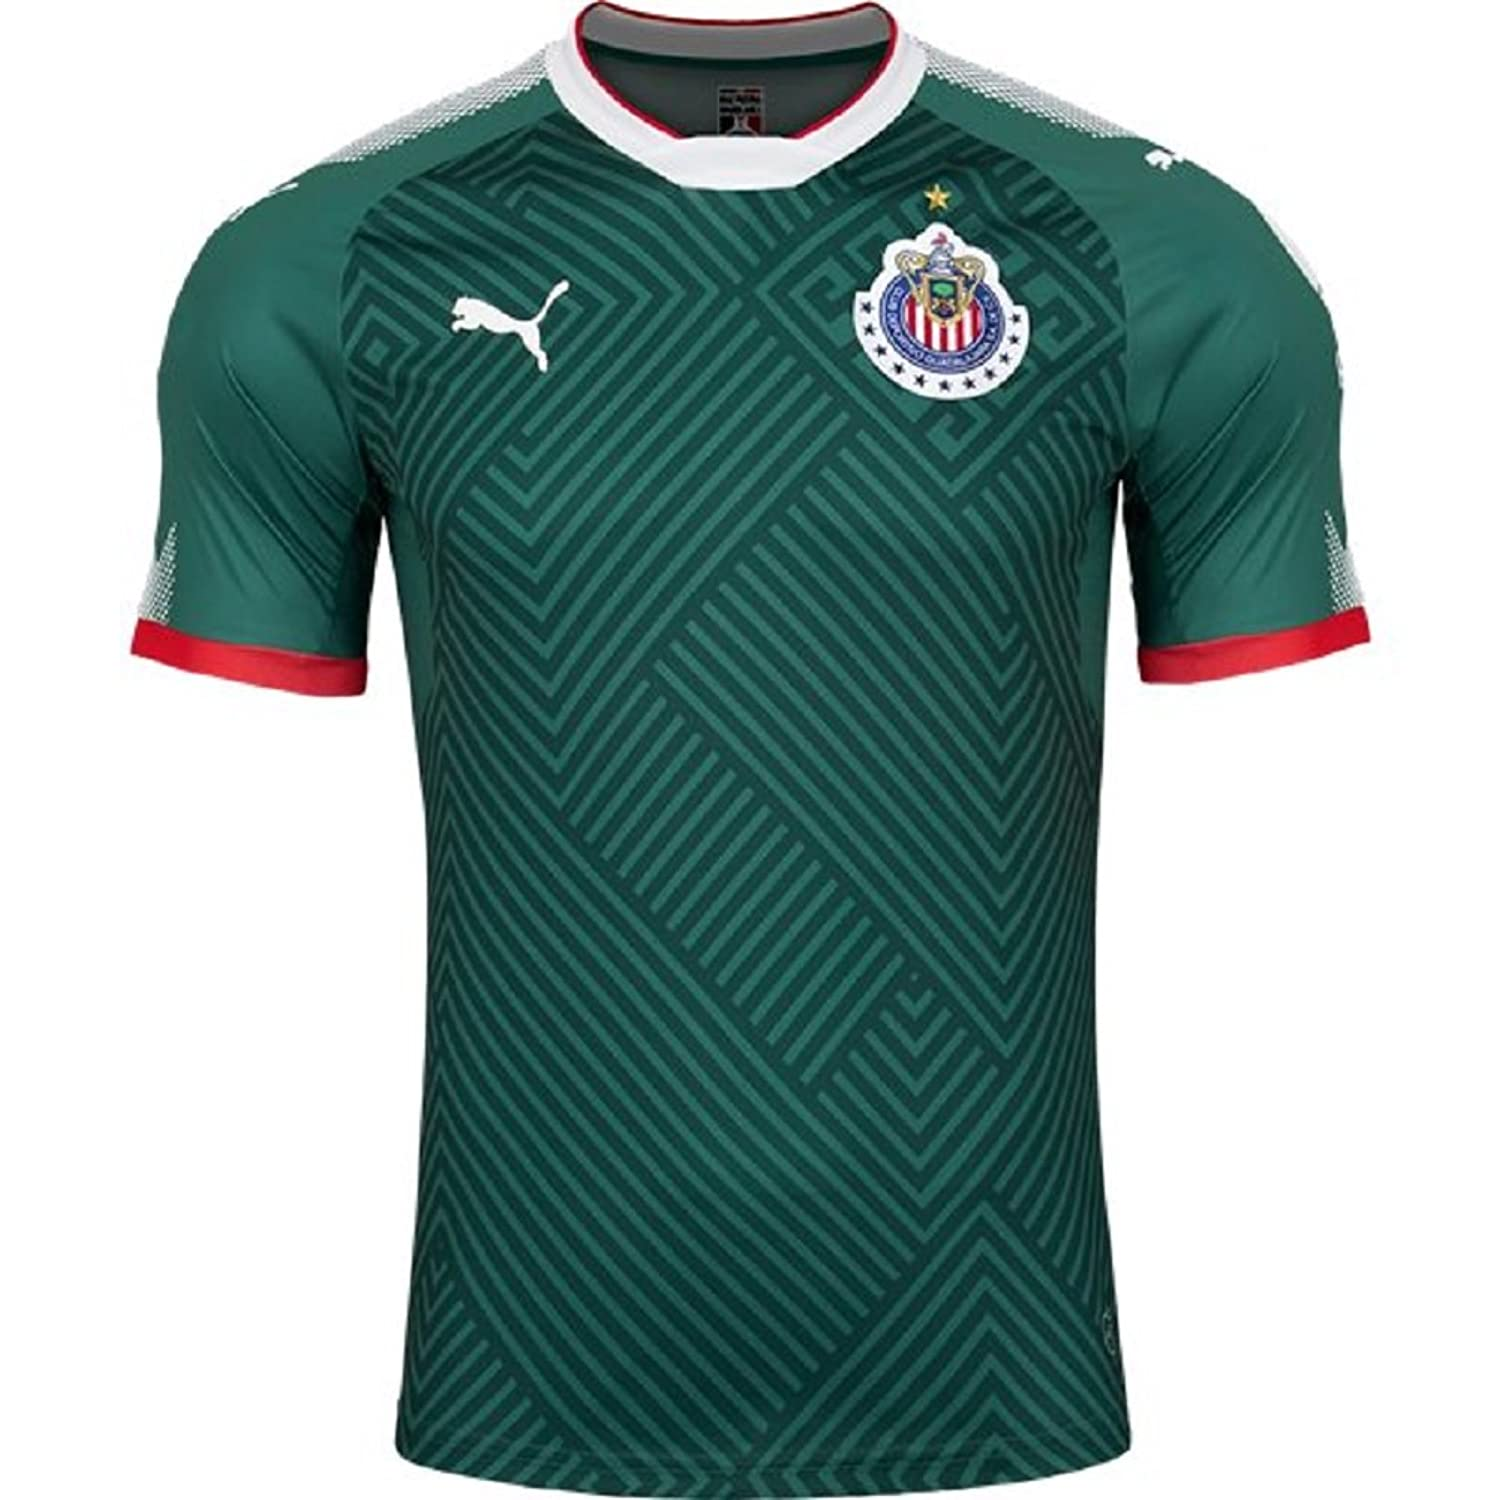 Puma Chivas Alternative Third Mens Soccer Jersey 2017 - 2018